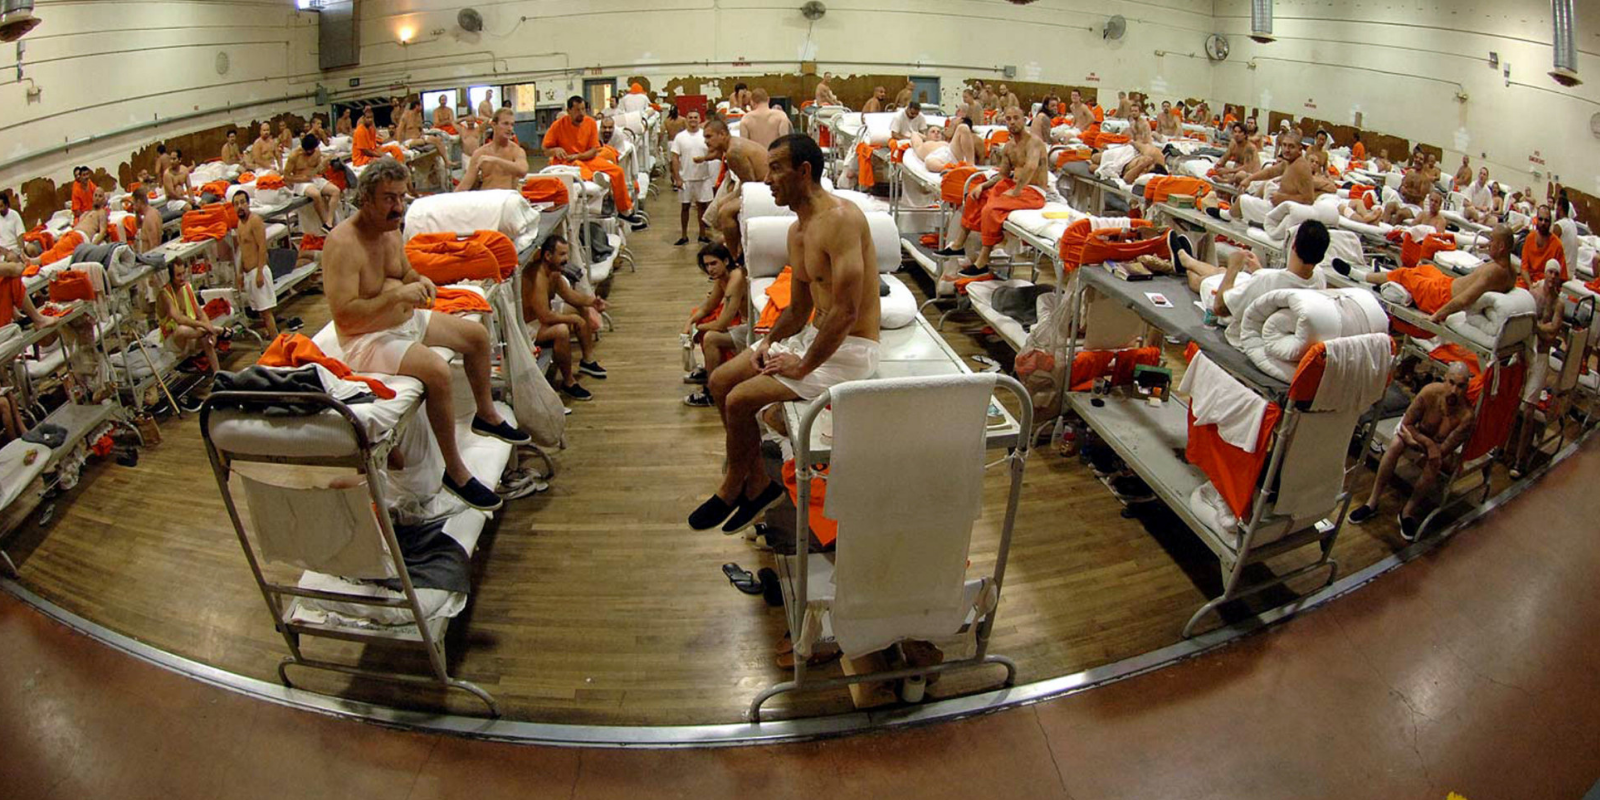 Inmates in California use COVID-19 relief claims to gain fraudulent unemployment funds